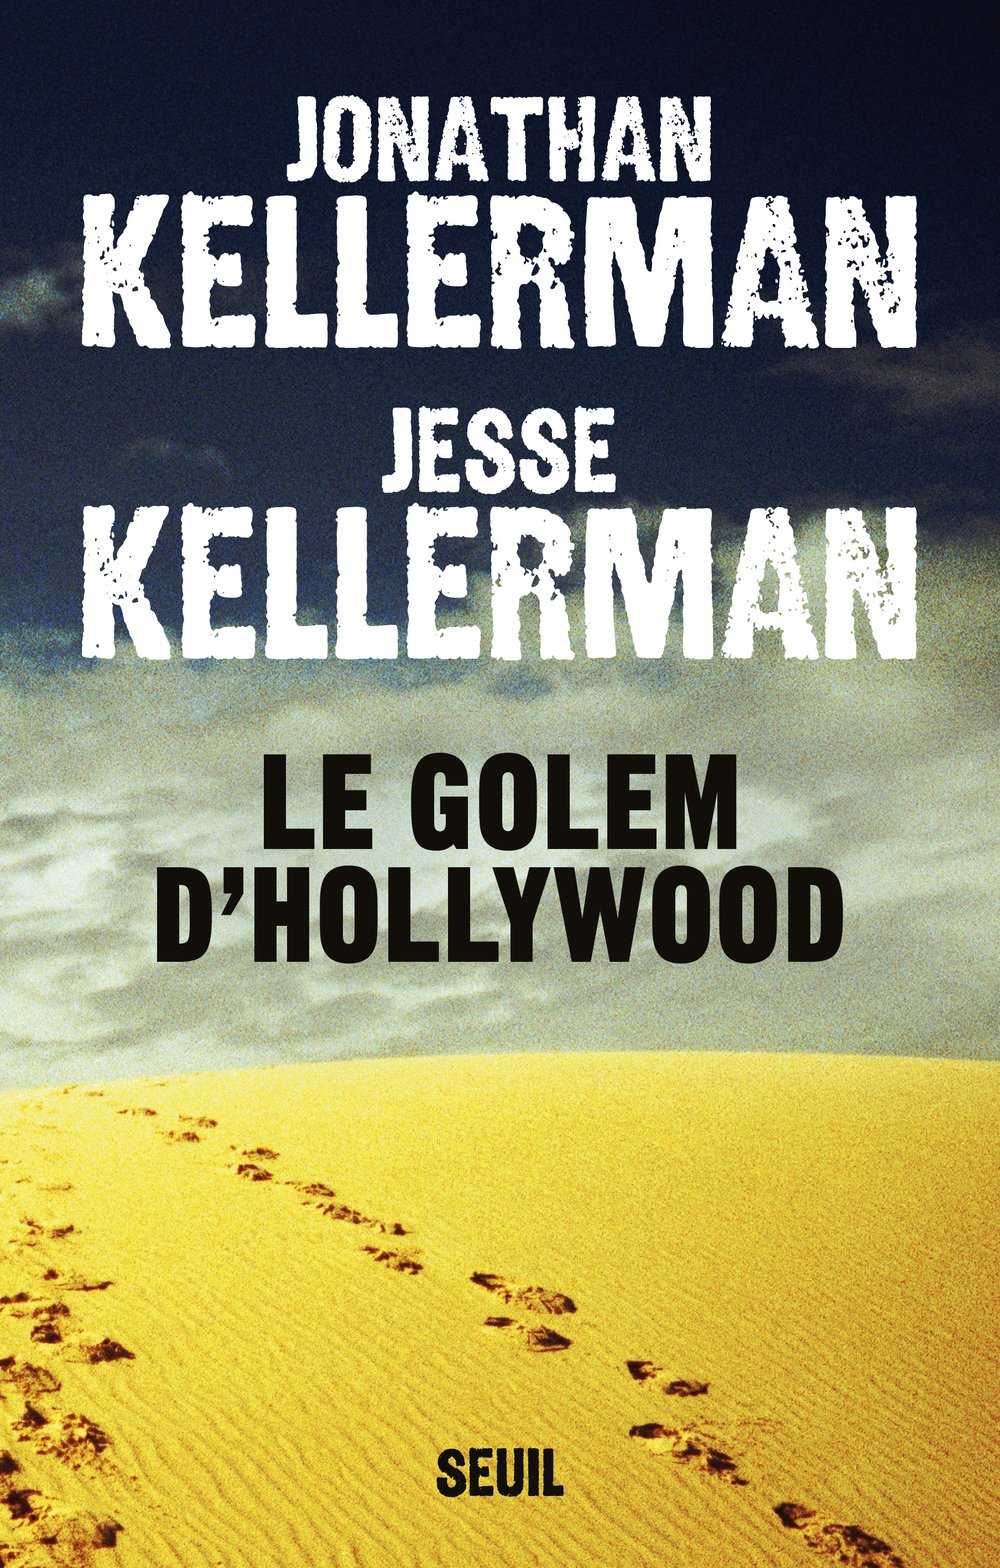 Jonathan Kellerman - Le Golem d'Hollywood